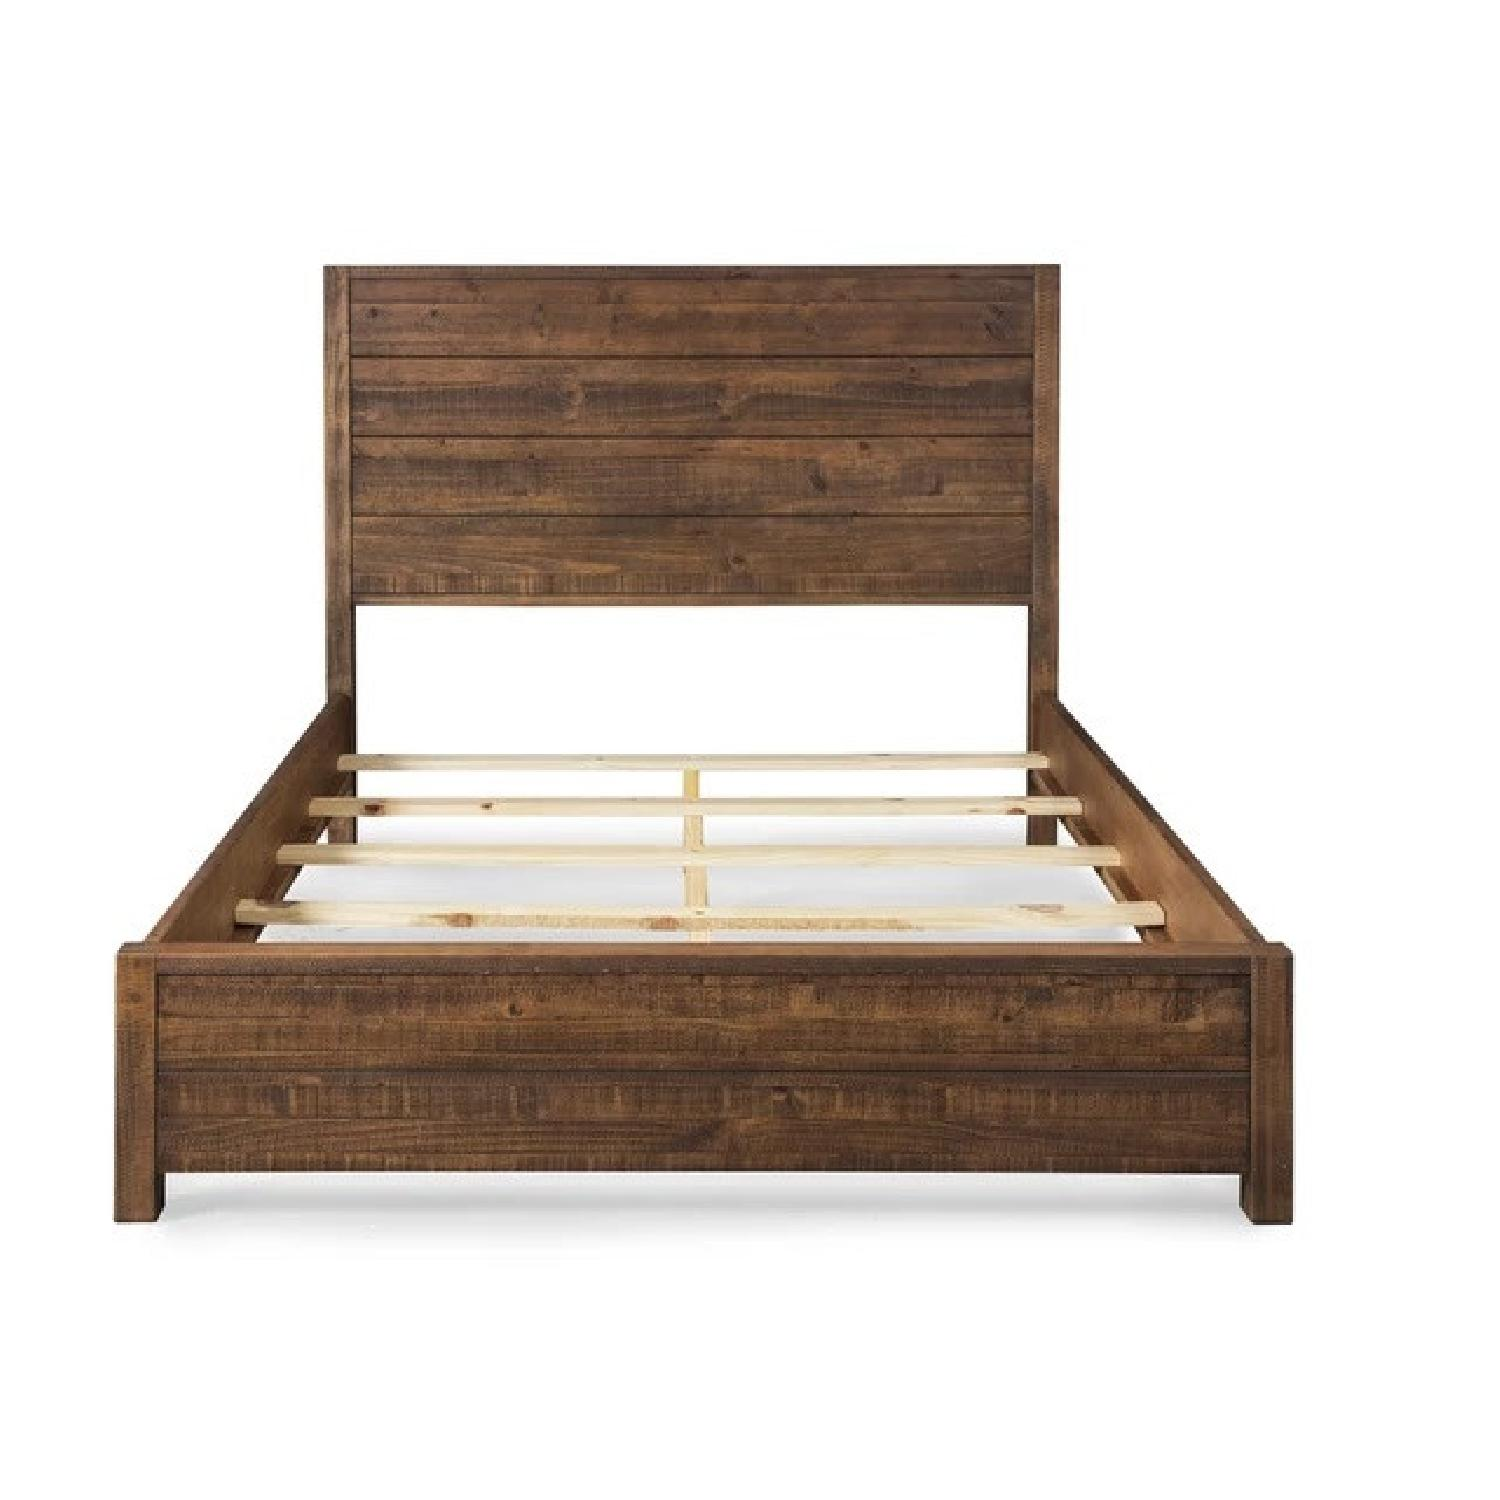 Grain Wood Furniture Rustic Style Queen Size Bed Frame - image-4